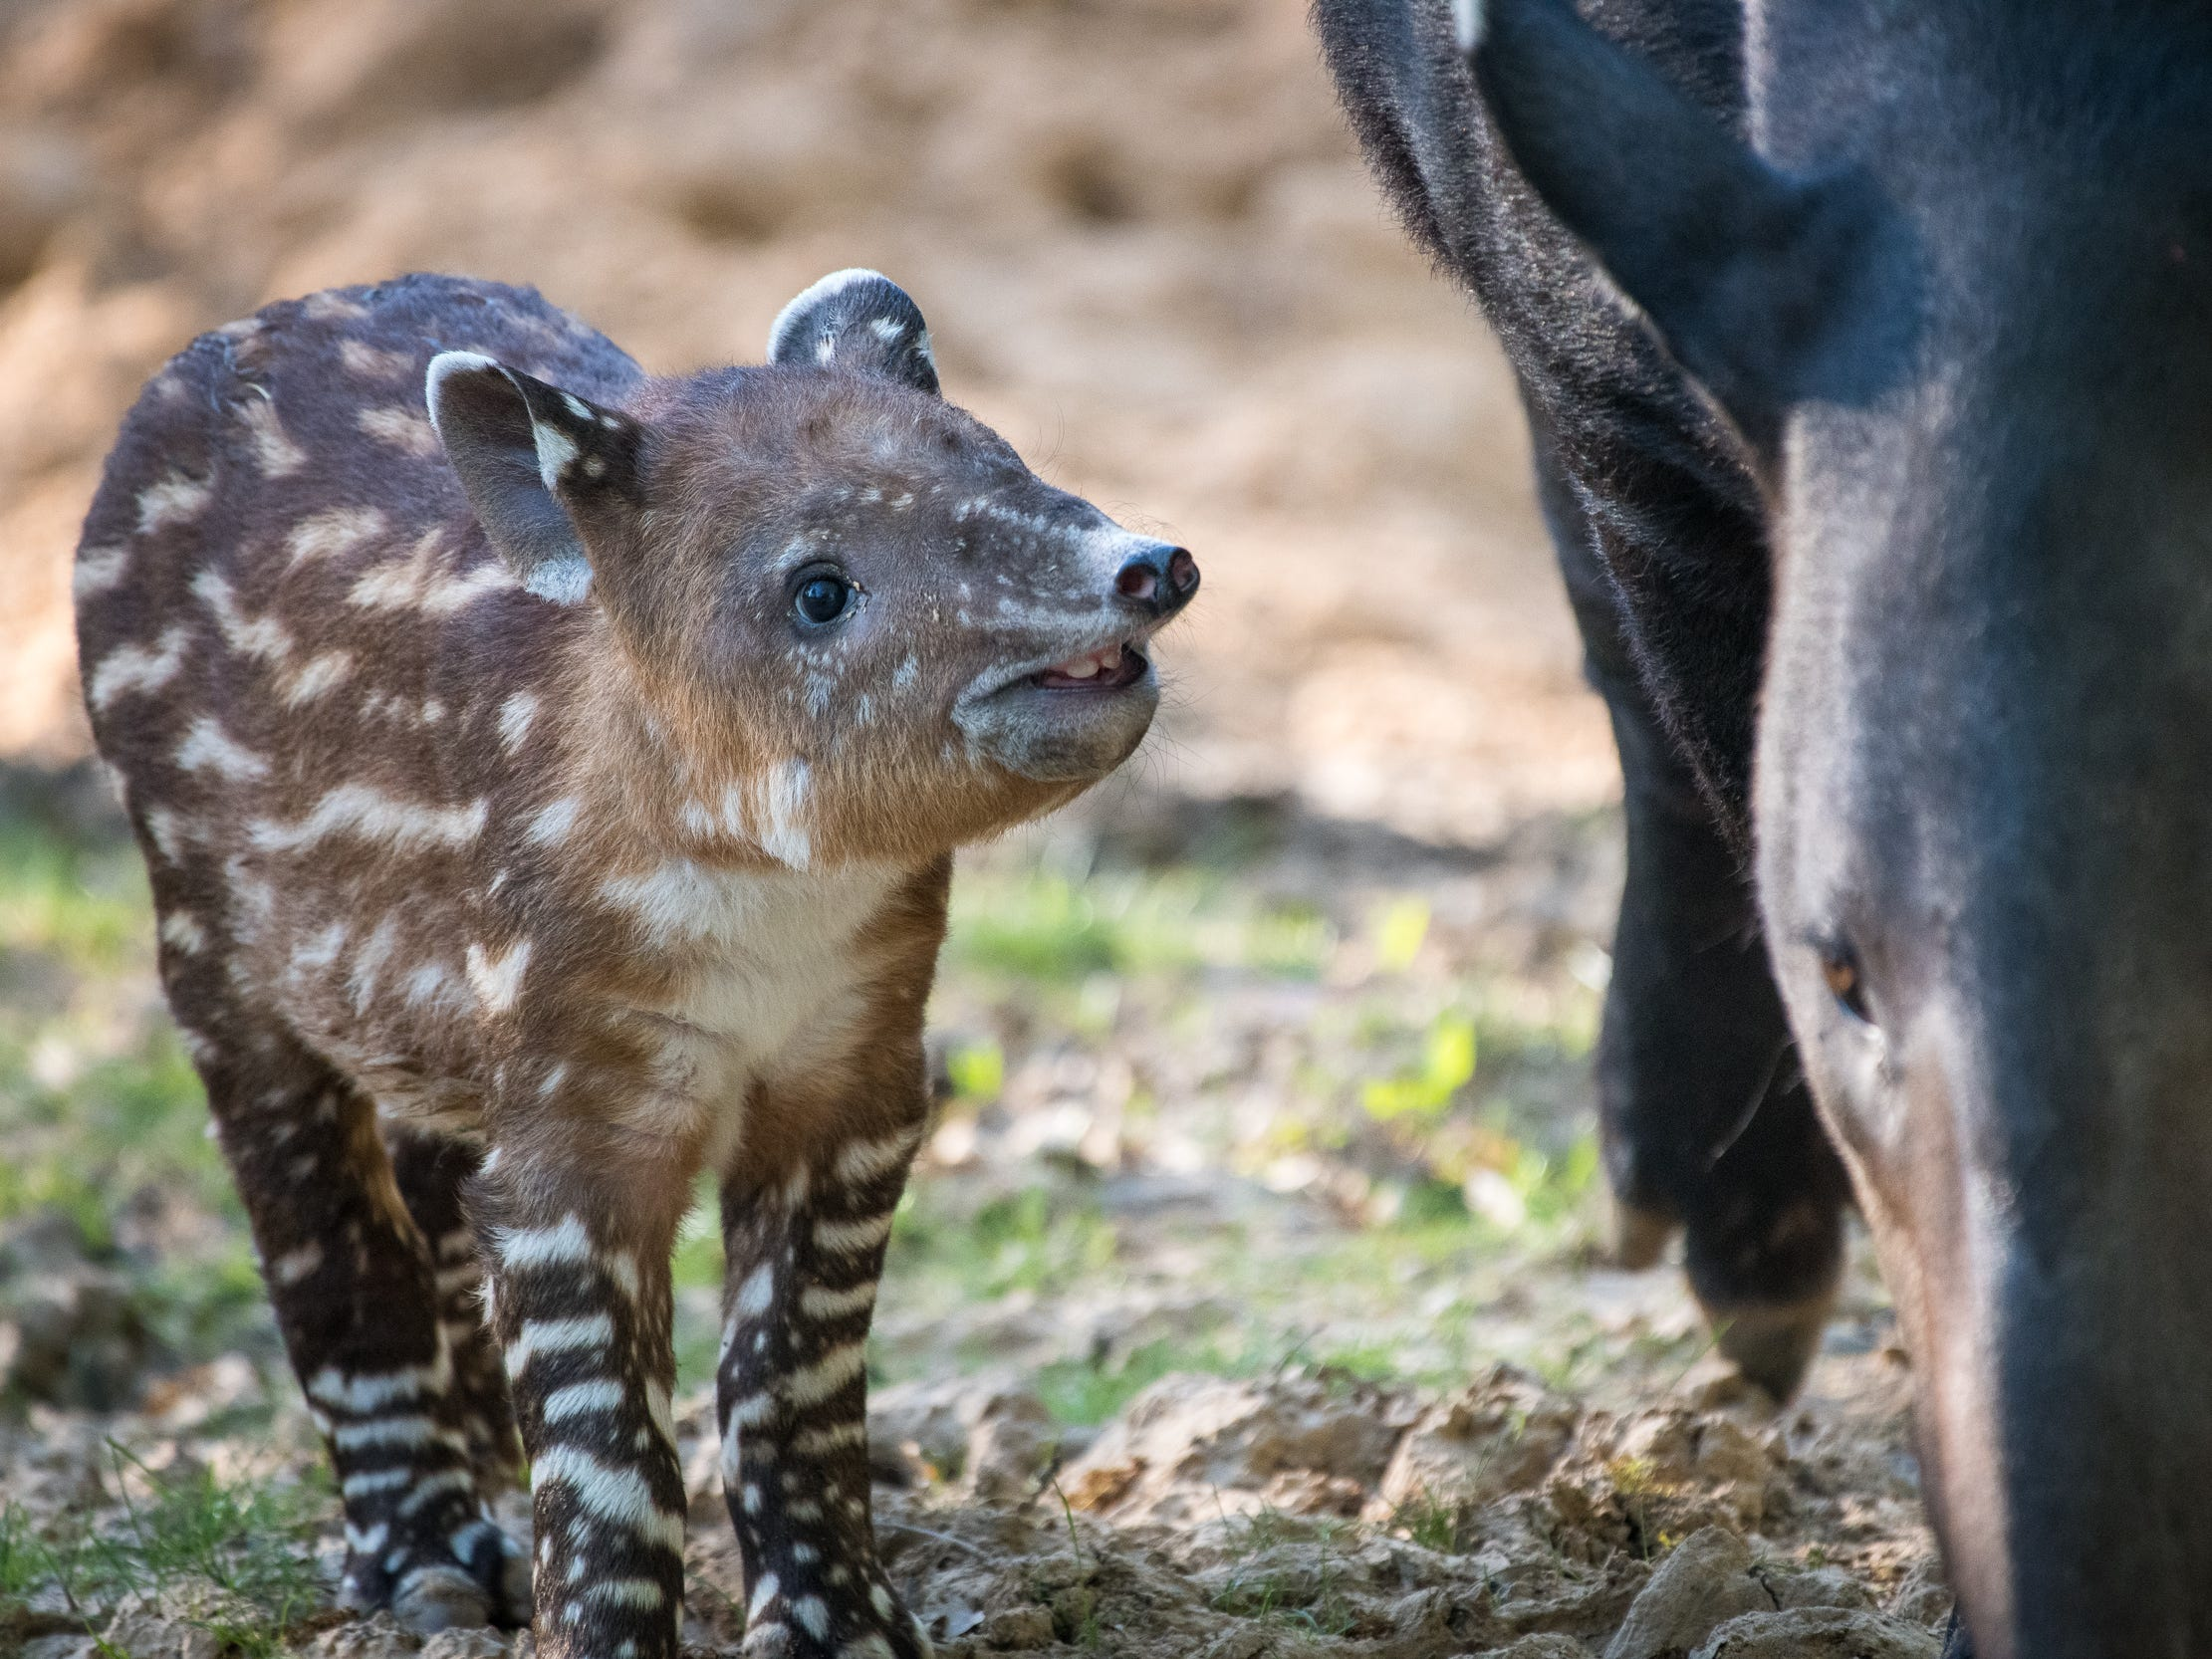 Frida, a baby Baird's tapir born on March 4 at the Houston Zoo, smiles for the camera.